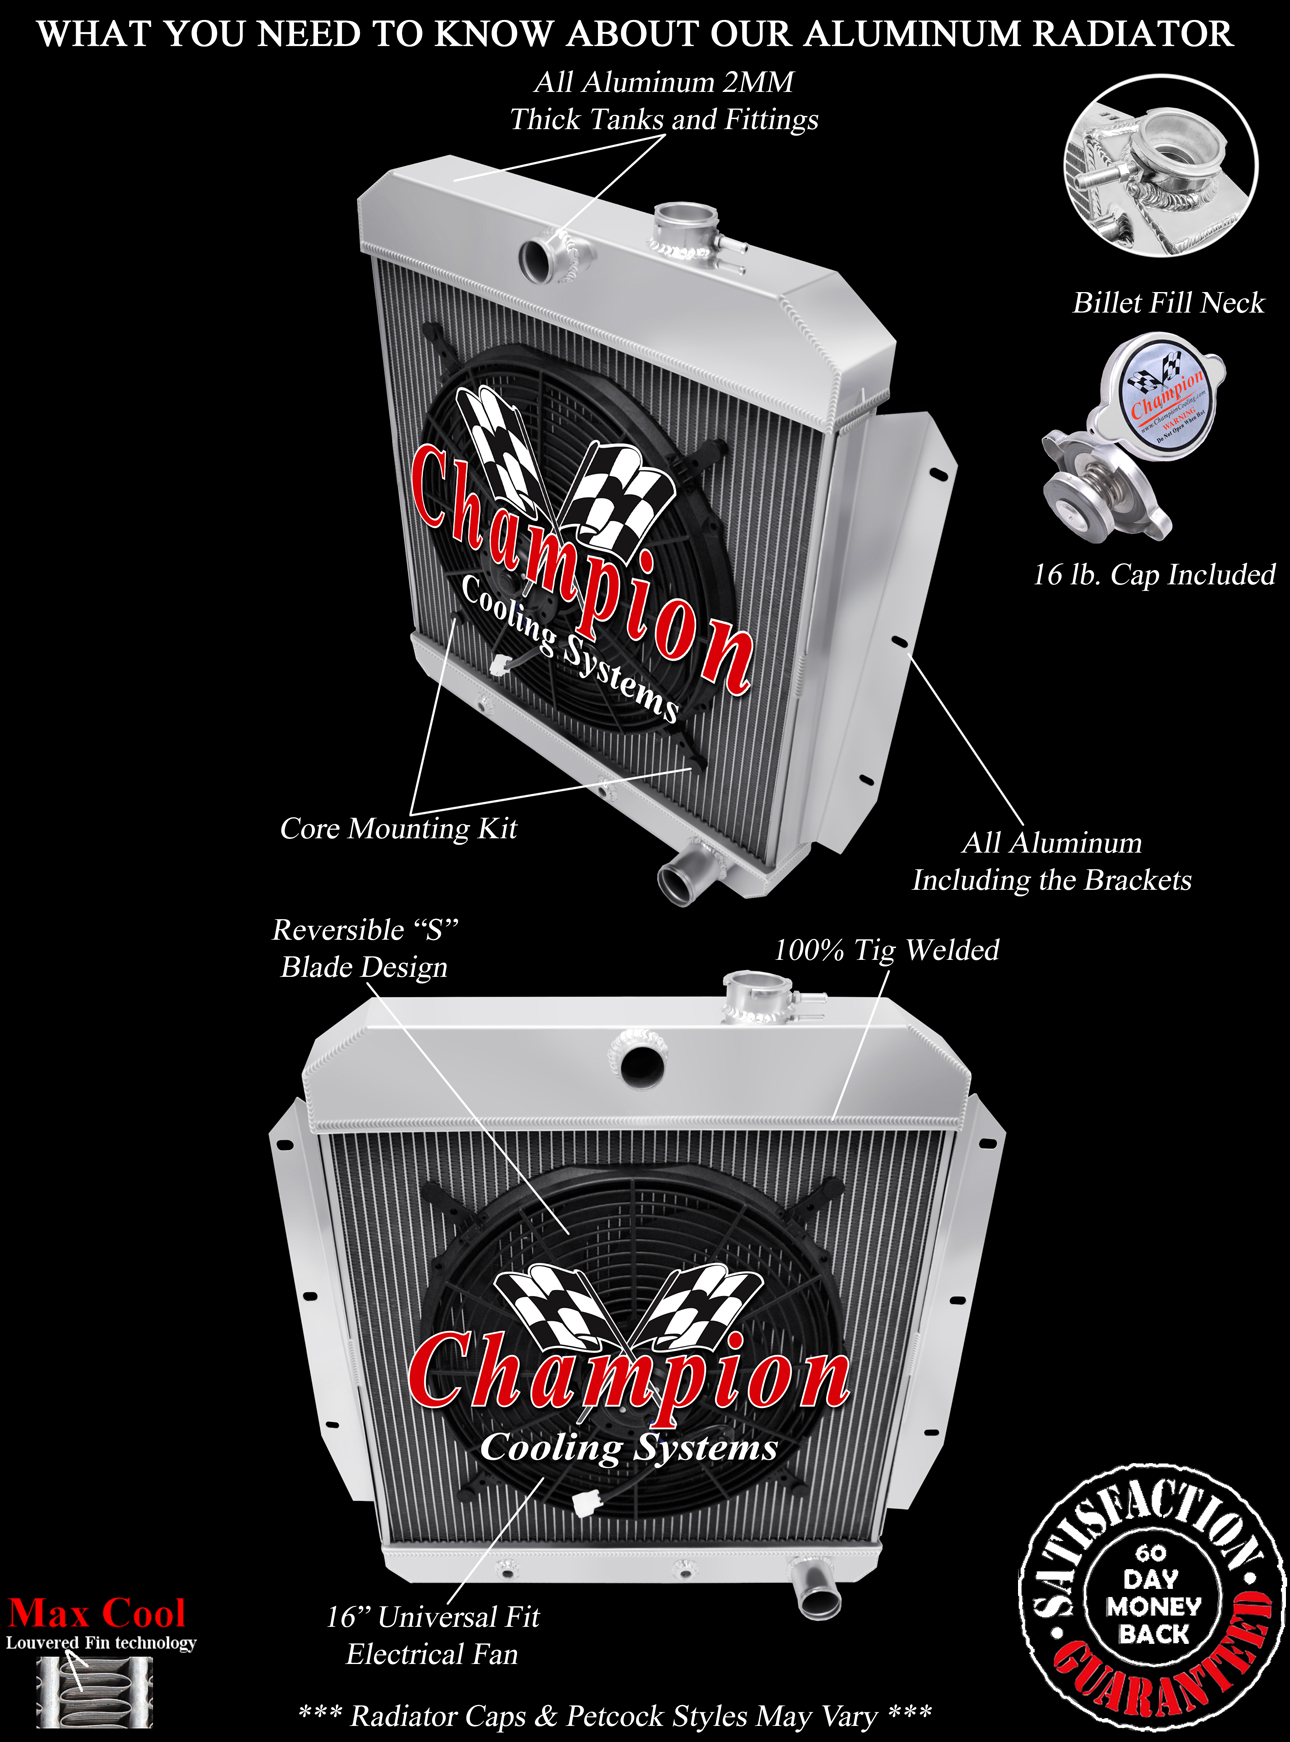 http://www.championcooling.com/photos/Photos%20White/With%20Fans/Combos/5559/5559_fan_black_Diagram_Champion.jpg